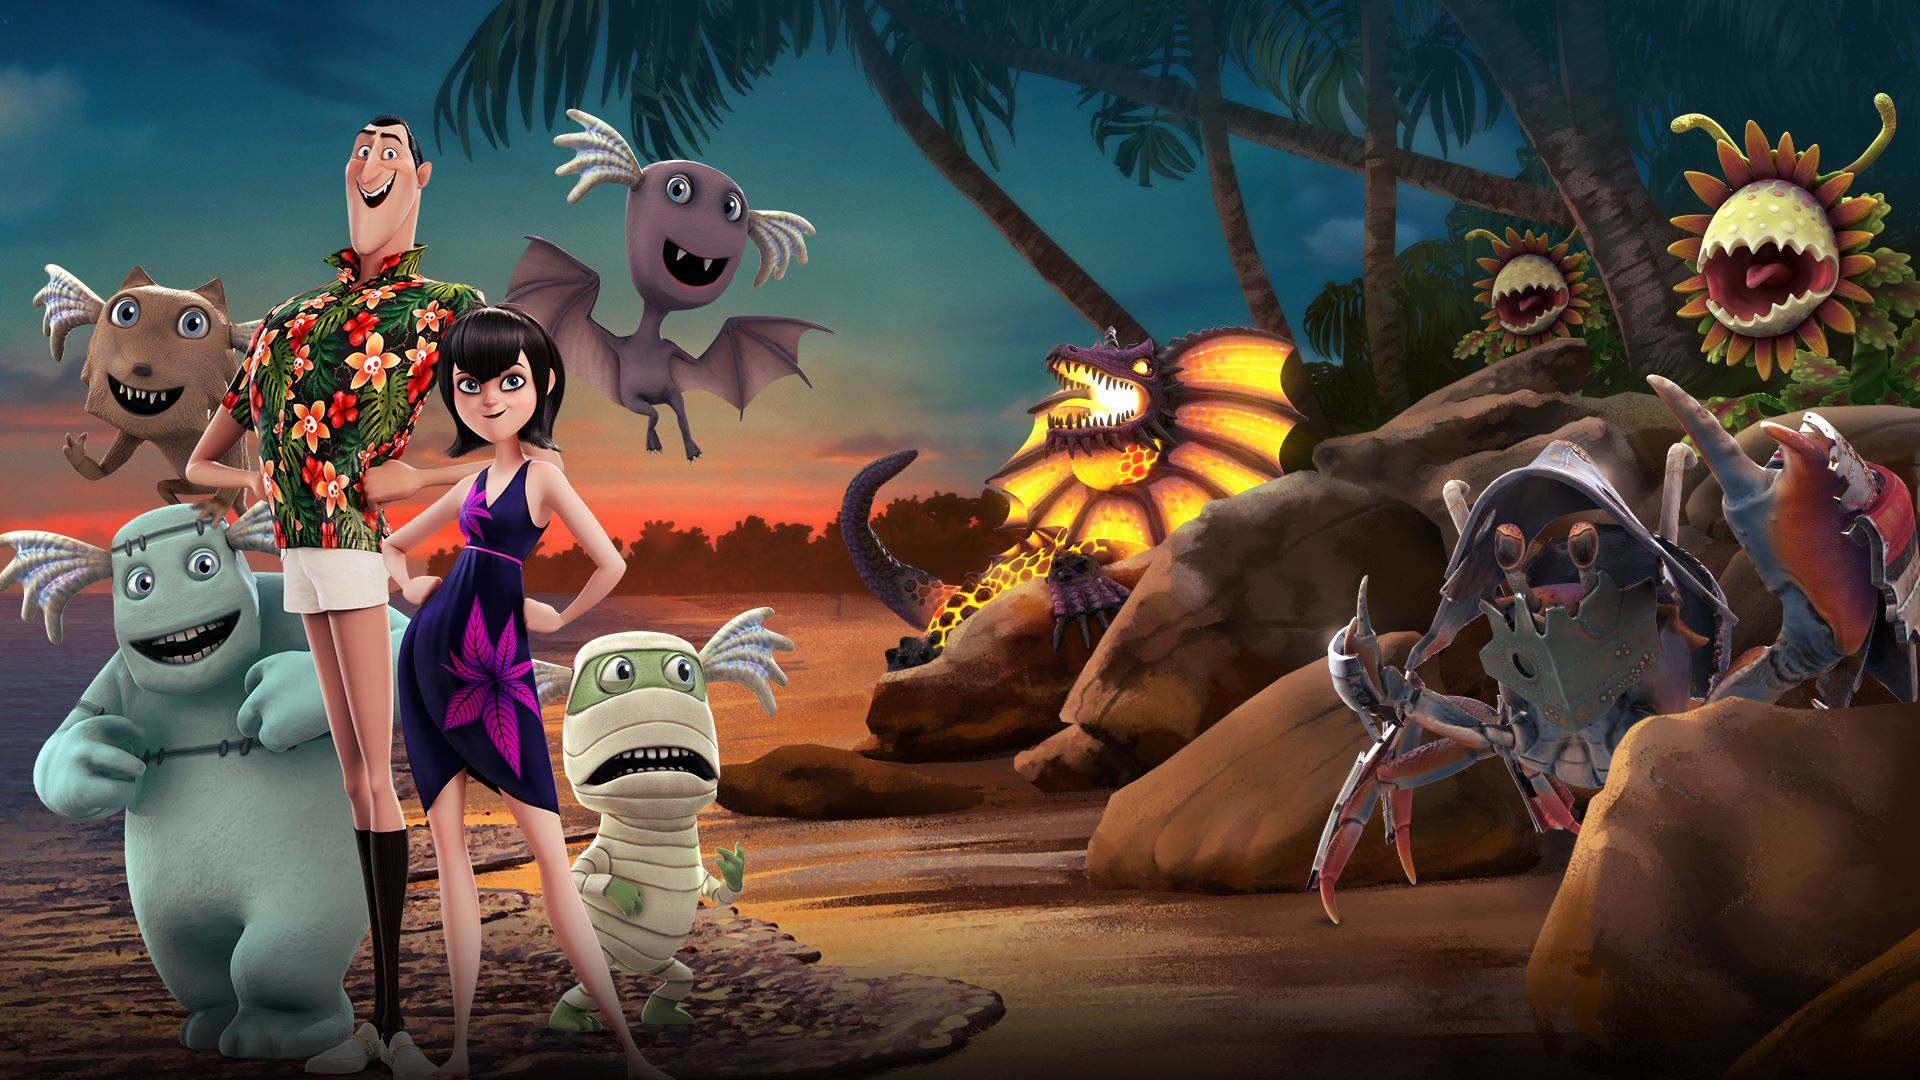 Hotel Transylvania 3 Monsters Release Date